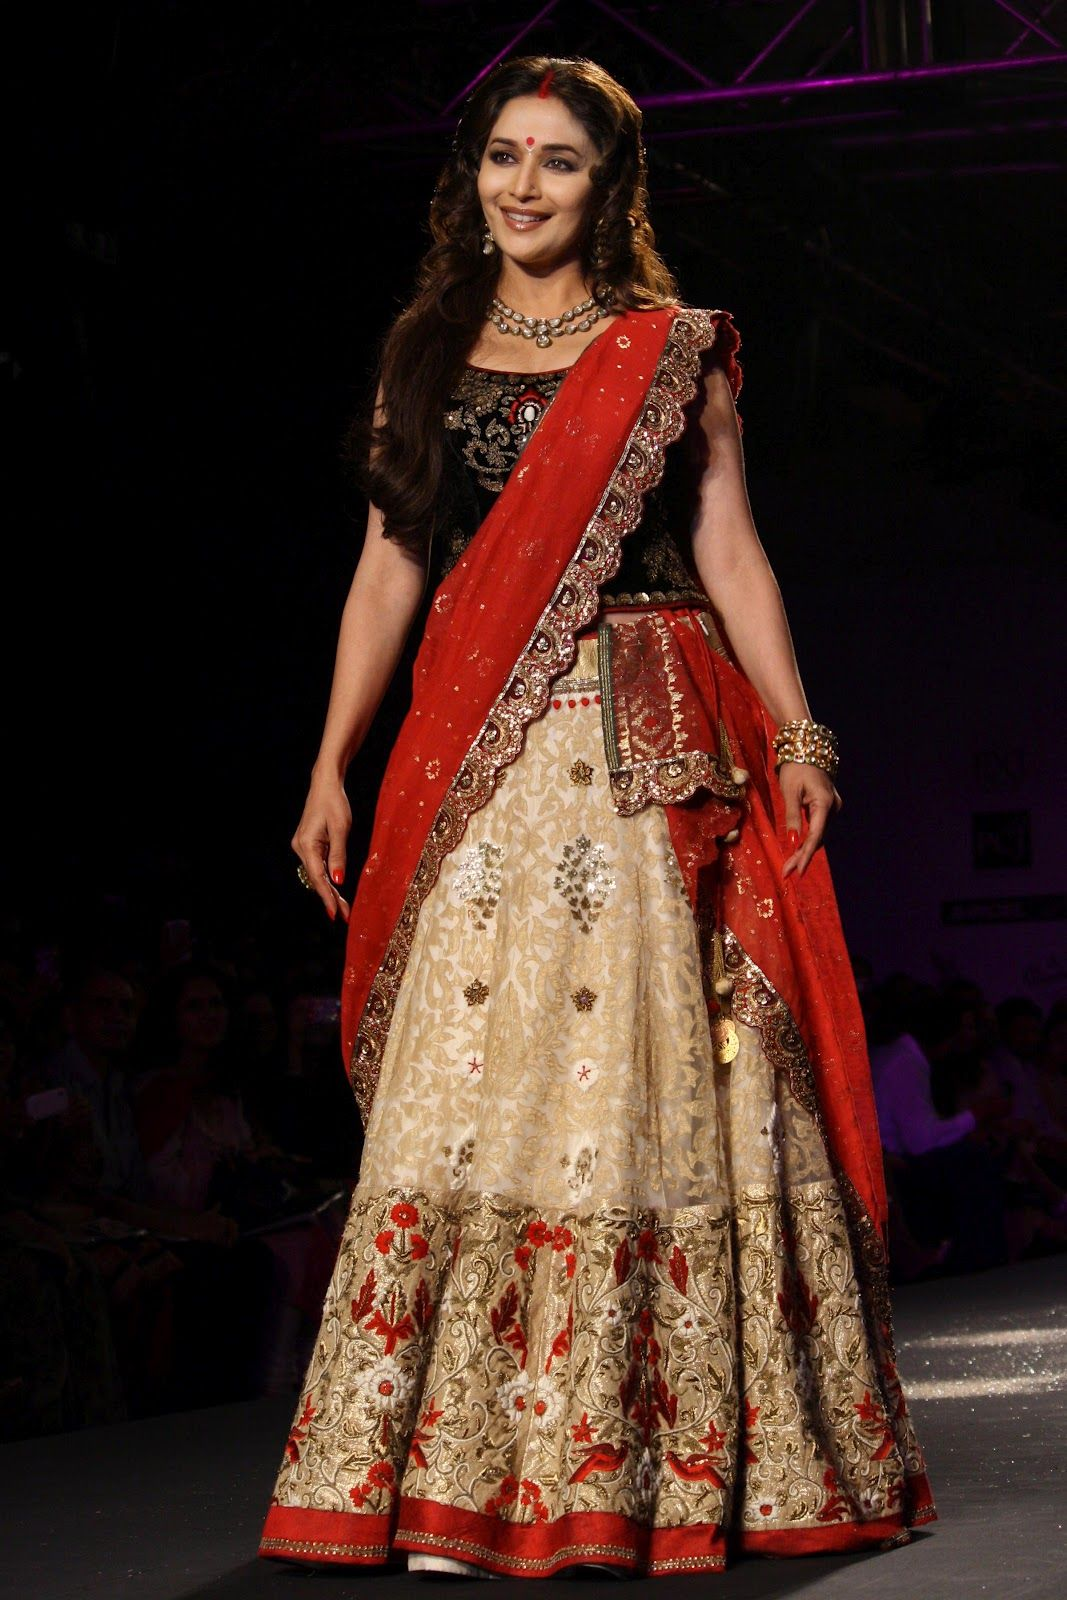 Manish malhotra anarkali manish malhotra anarkali hd wallpapers car - Fashion Zone Delhi Couture Week 2012 Manish Malhotra Collection